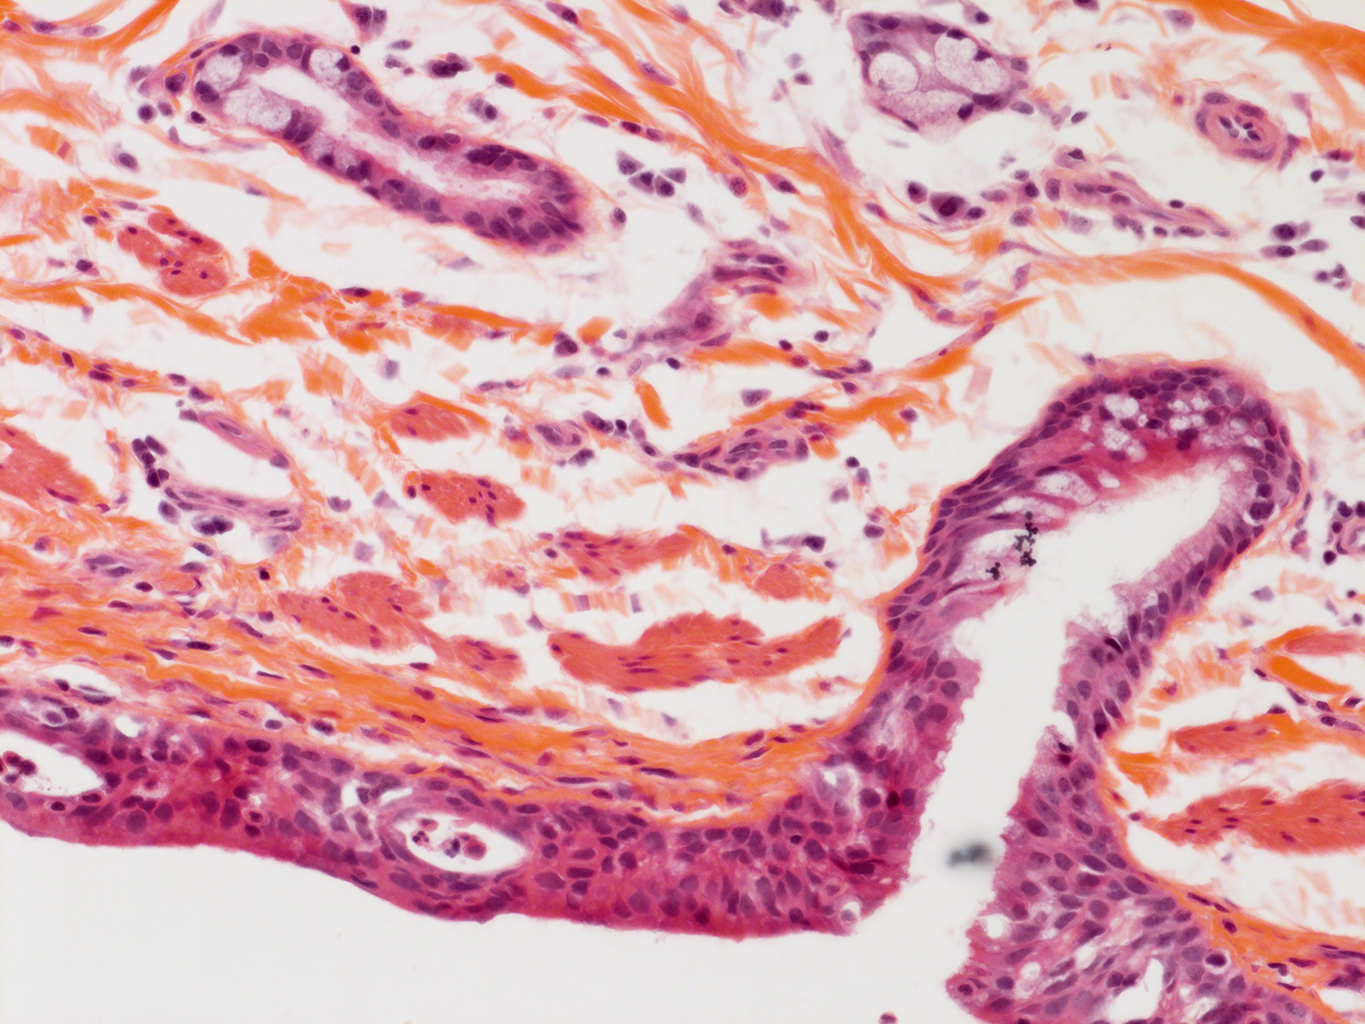 H&E Staining of 11 Month-Old Human Lung from Donor D094-LLL-4B3